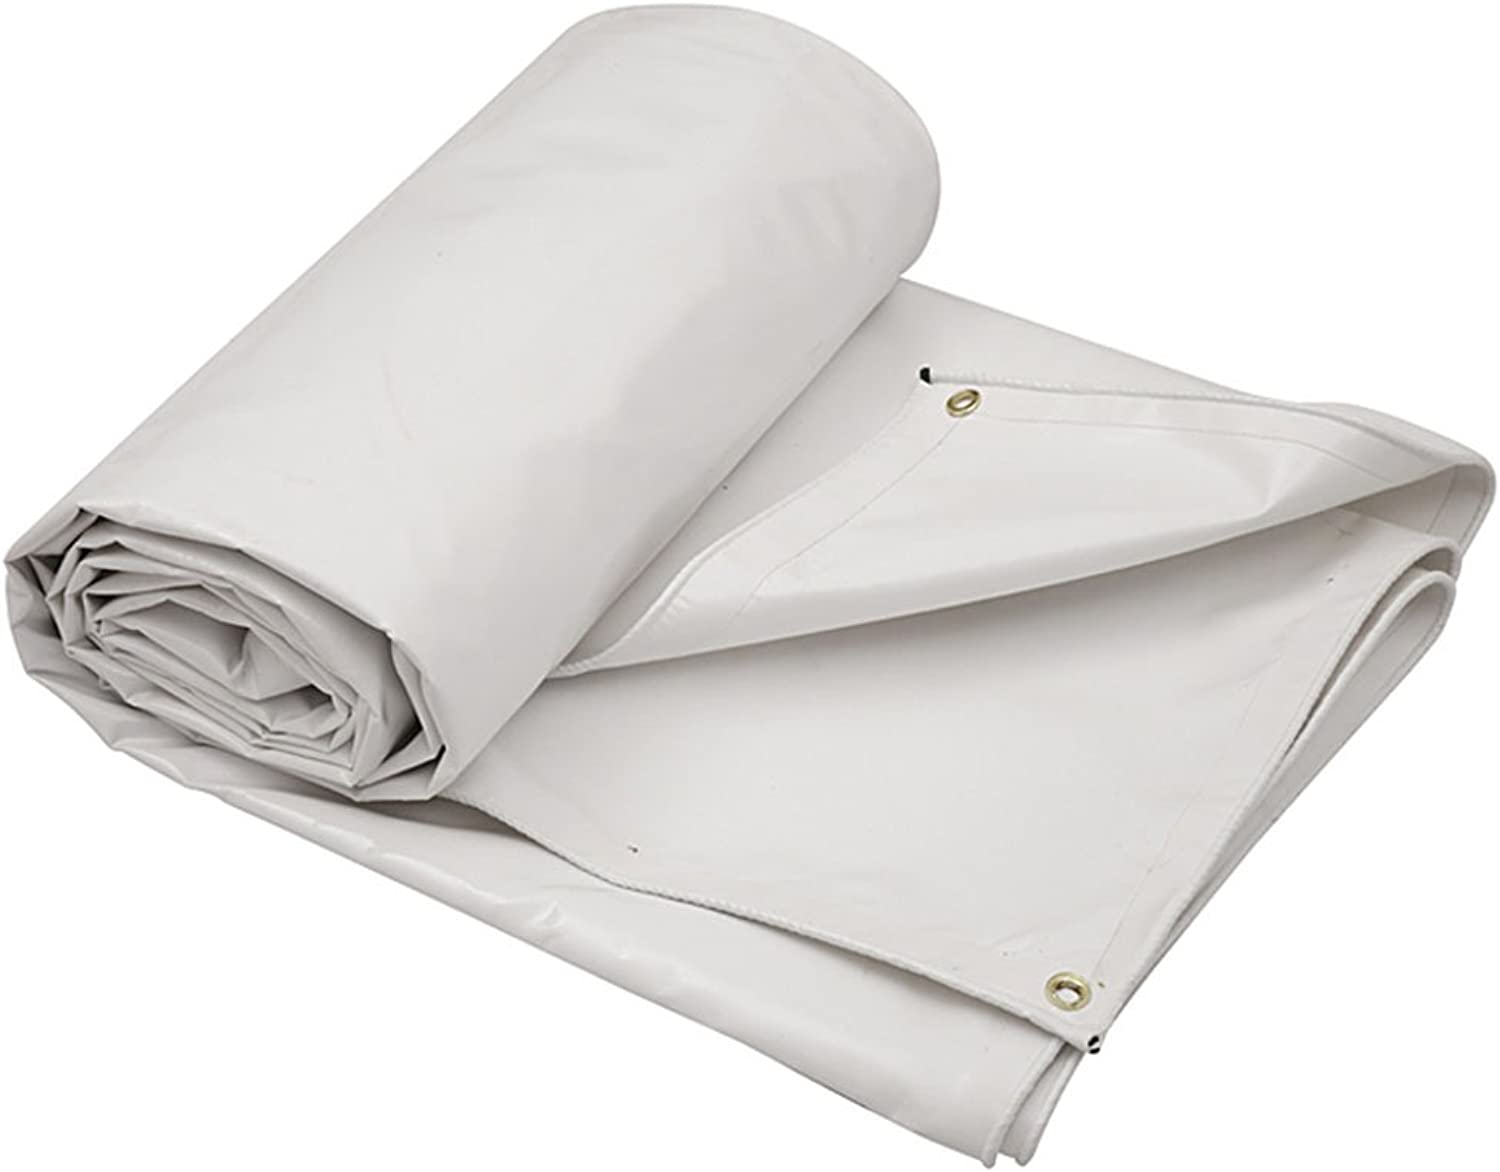 WUFENG Tarpaulin Thicken PVC Soft AntiCorrosion Antifreeze Rainproof Sun Predection Windproof 3 Defense Linoleum Knife Cloth AntiAging Outdoor 0.6mm Thick 650g m2 (color   White, Size   6x5m)